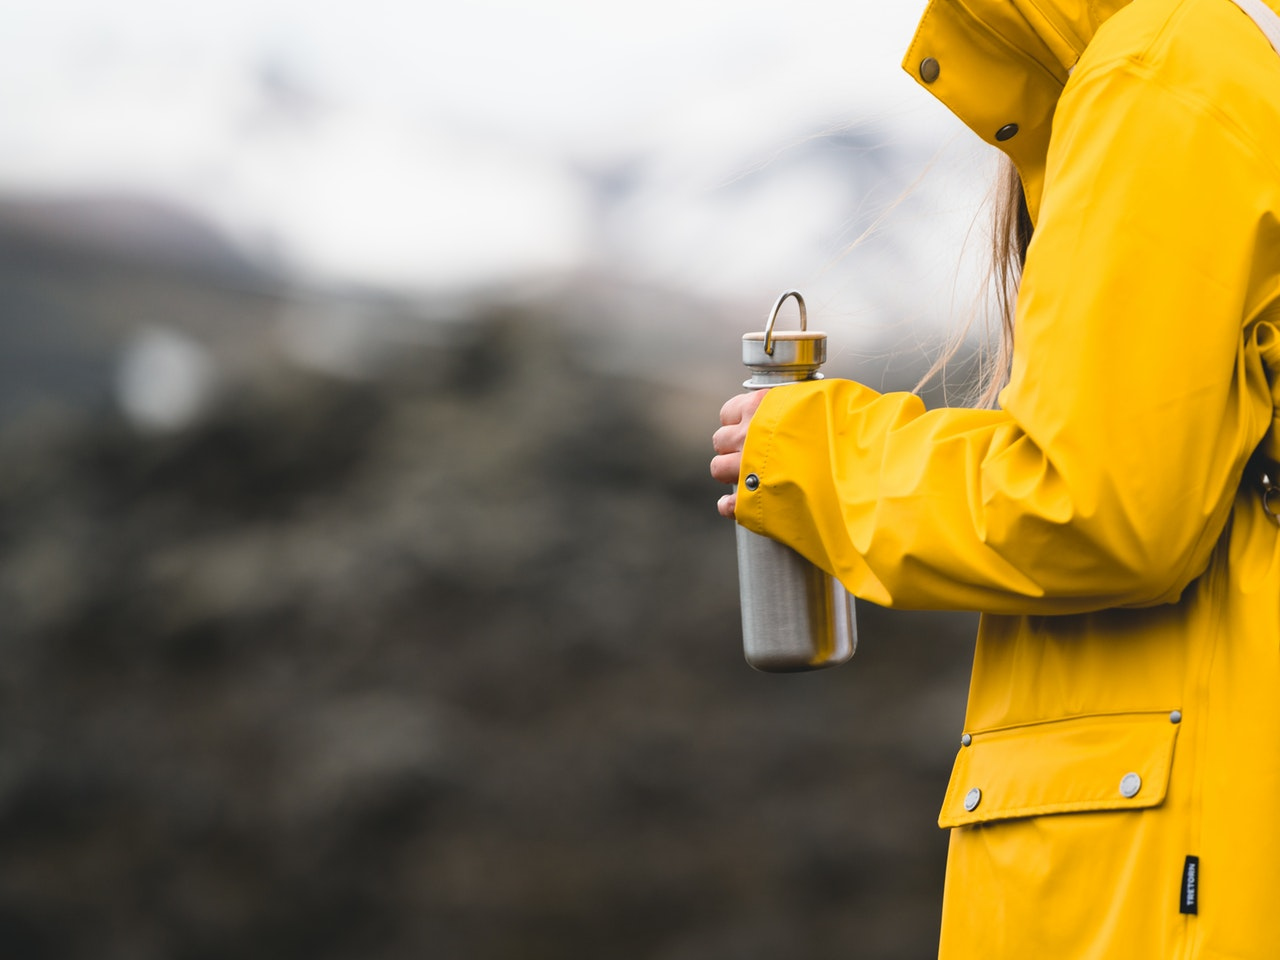 person in yellow coat holding a hydro flask vs yeti tumbler